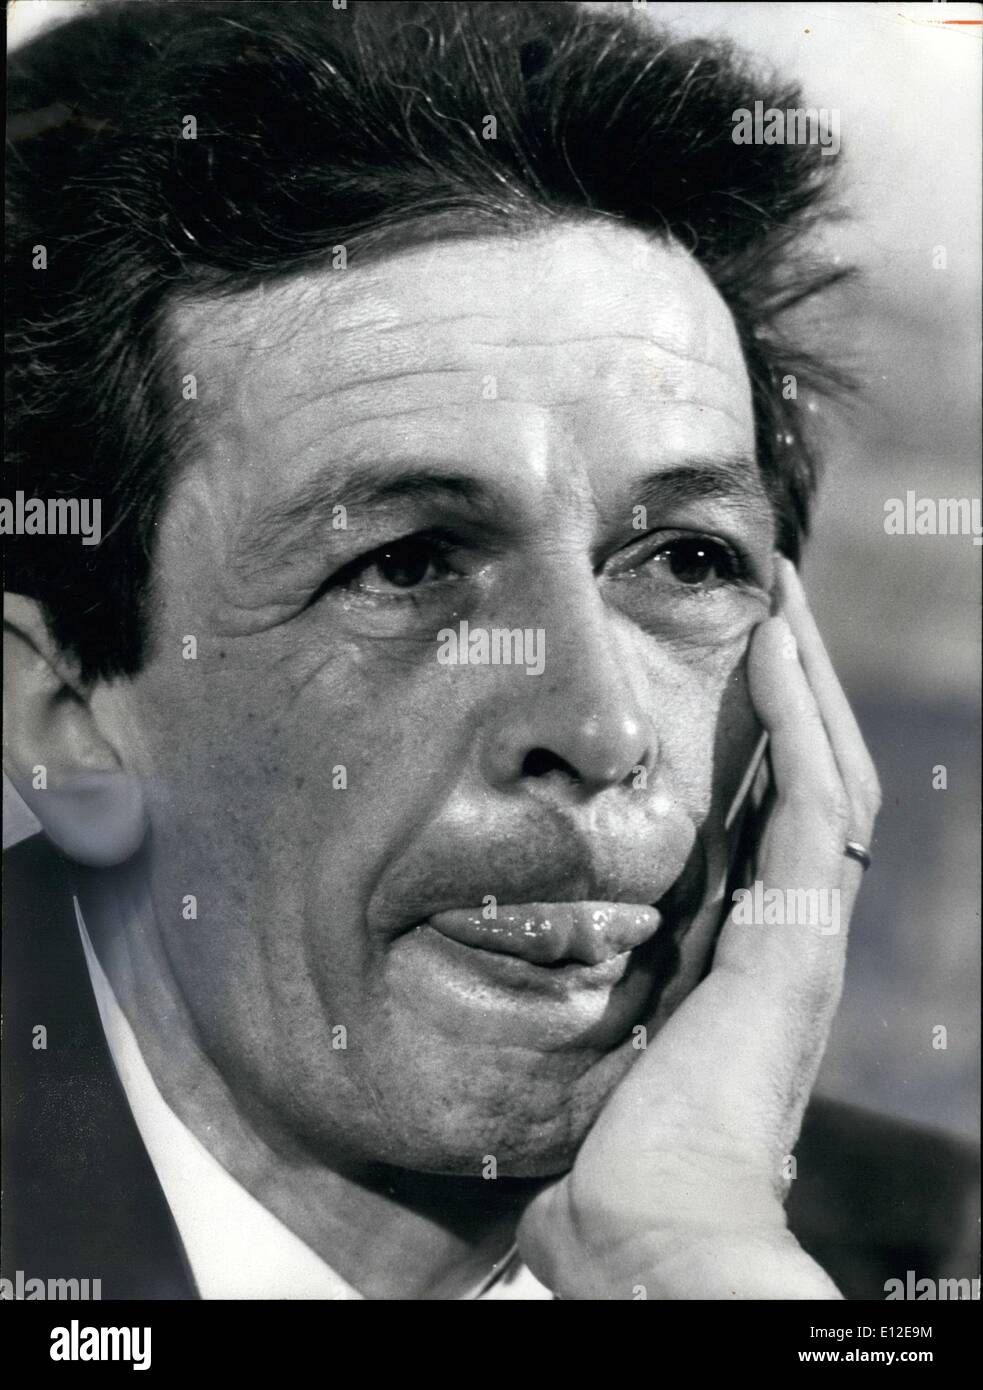 Dec. 15, 2011 - Italy's Communists scored their biggest electoral gains since World War II nearly overtaking Christian Democrats in regional elections as the nation's most powerful party. Photo shows the leader of the Italian Comunist party Enrico Berlinguer, 53, born in Sassari, Sardinia. - Stock Image